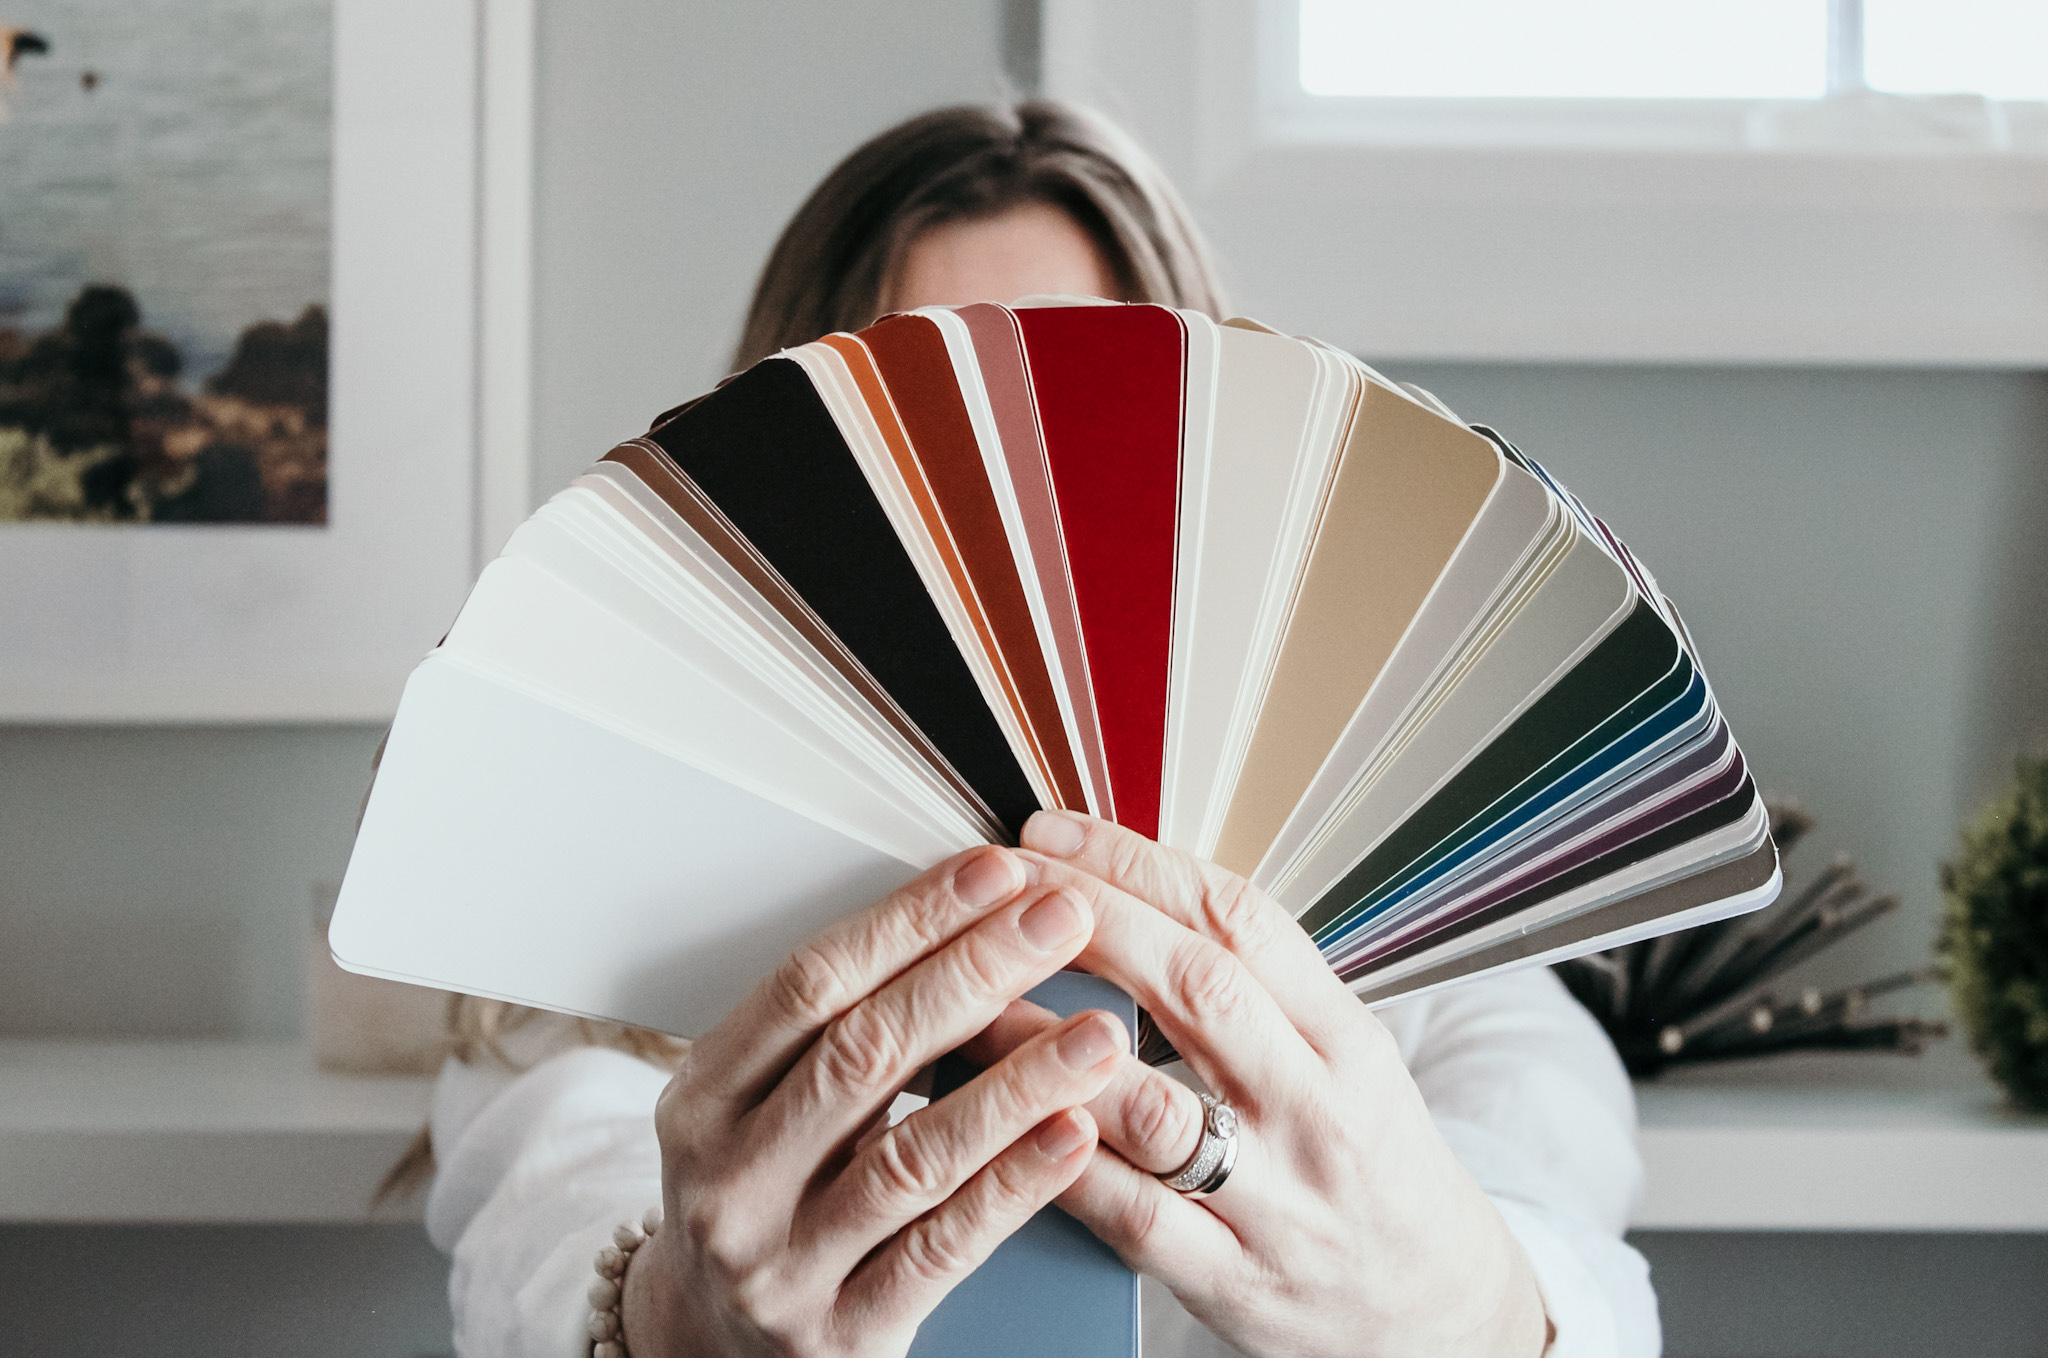 a variety of paint chips fanned out